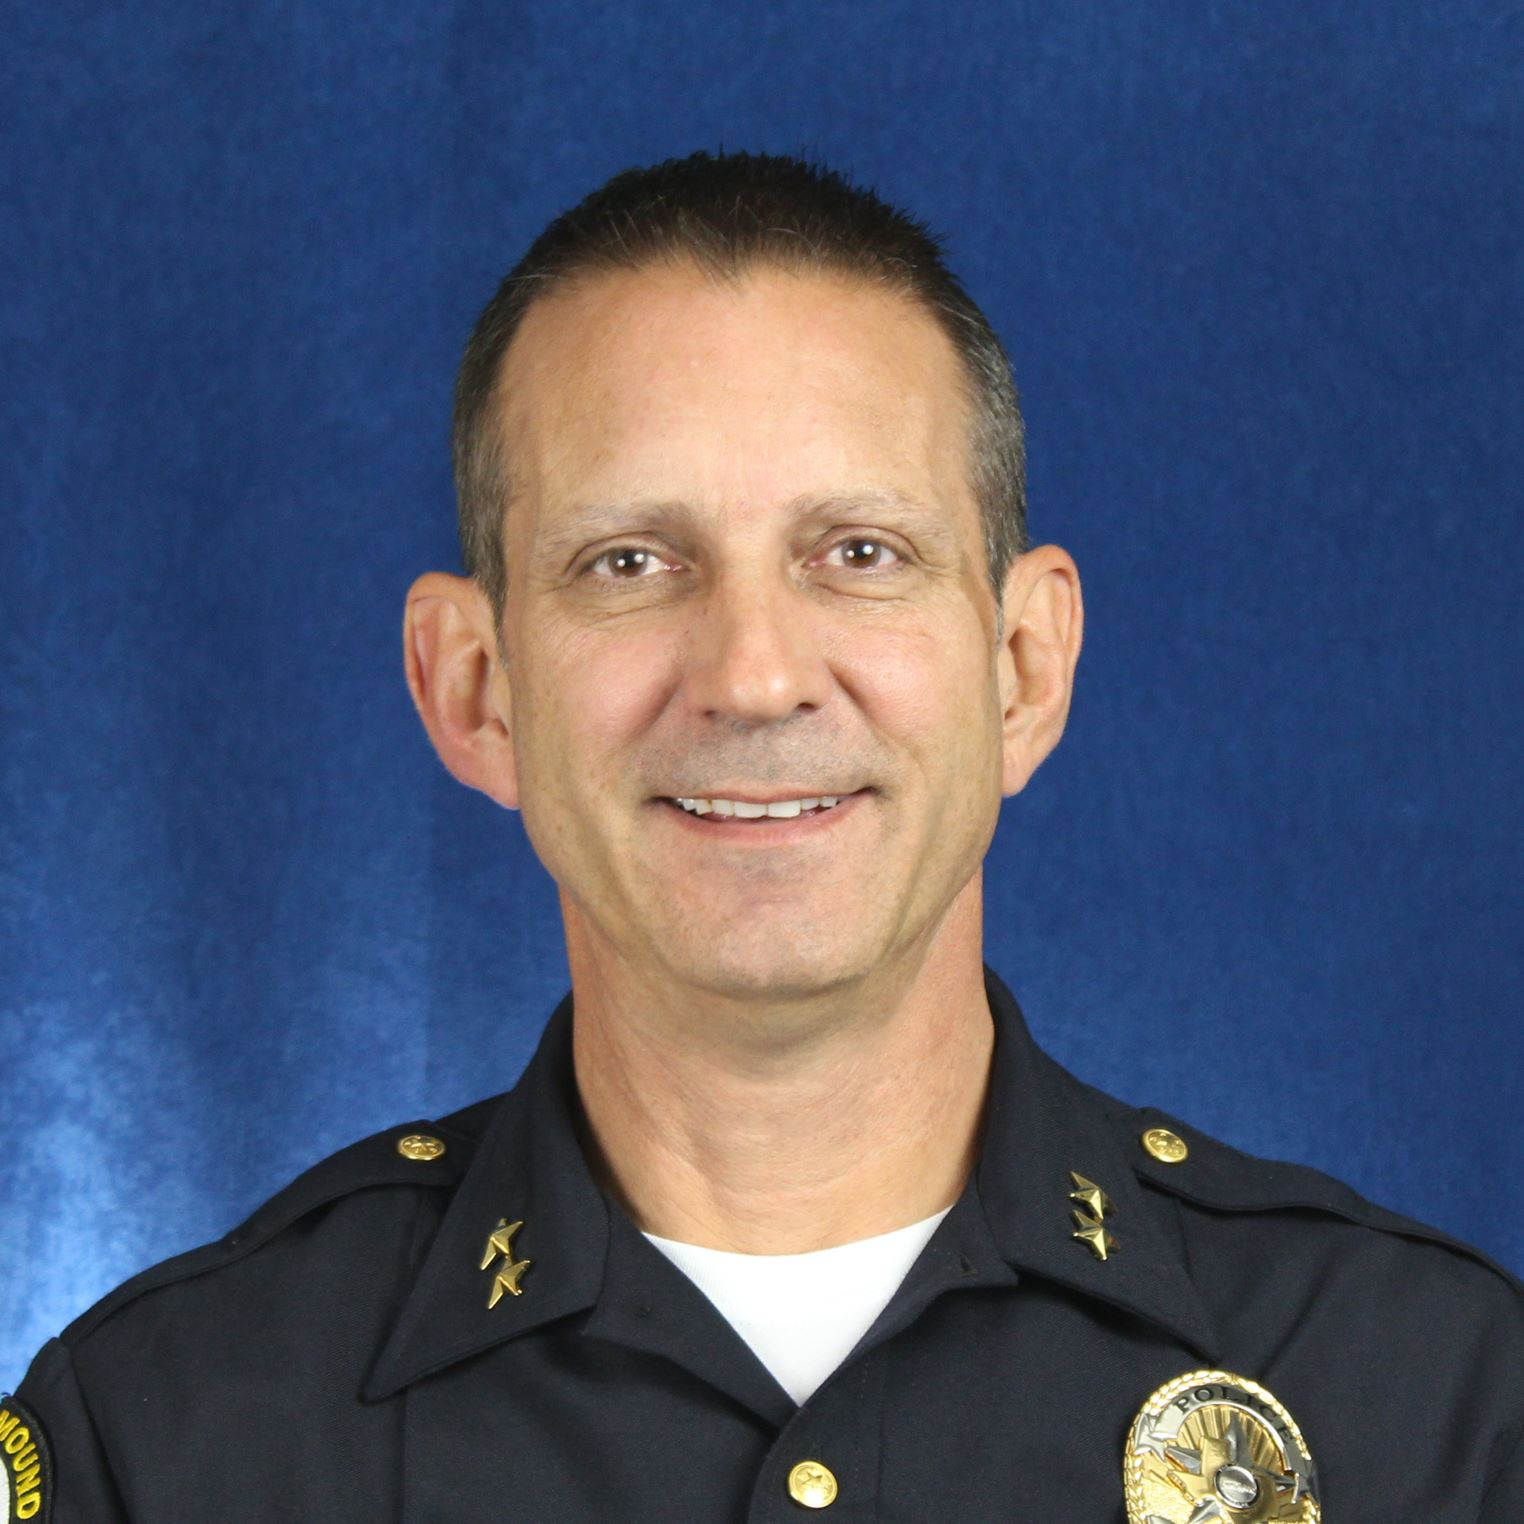 Chief Kancel has been with the Flower Mound Police Department since 2013, prior to that serving as the as Assistant Police Chief in North Richland Hills.